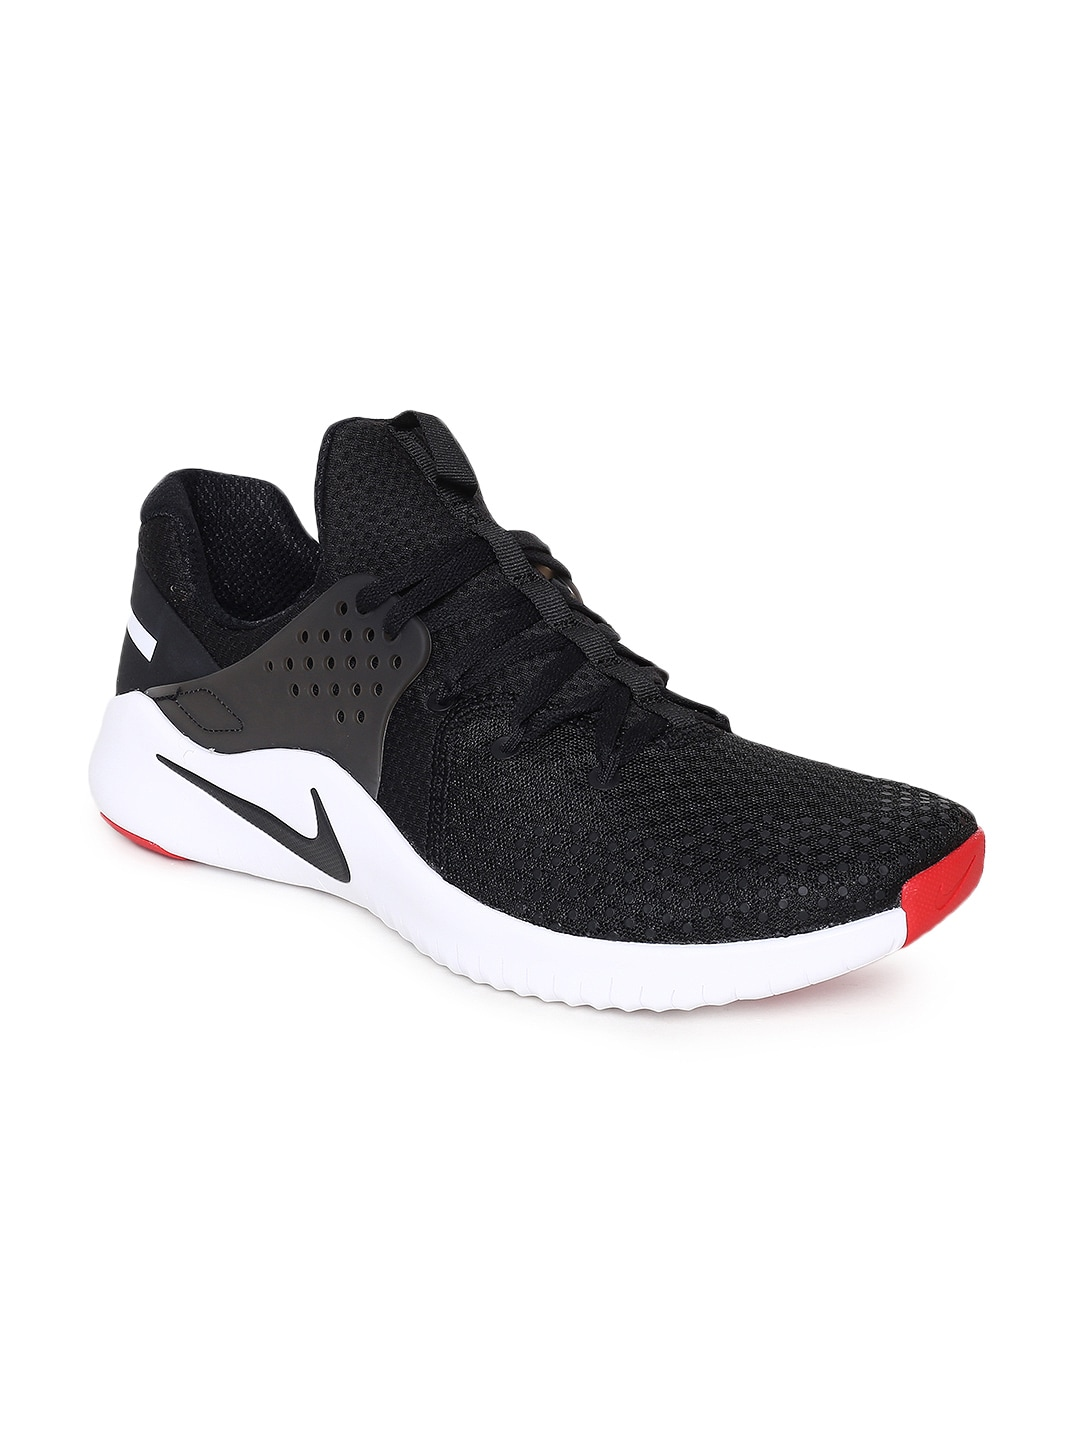 ff361539738 Men s Nike Sports Shoes - Buy Nike Sports Shoes for Men Online in India